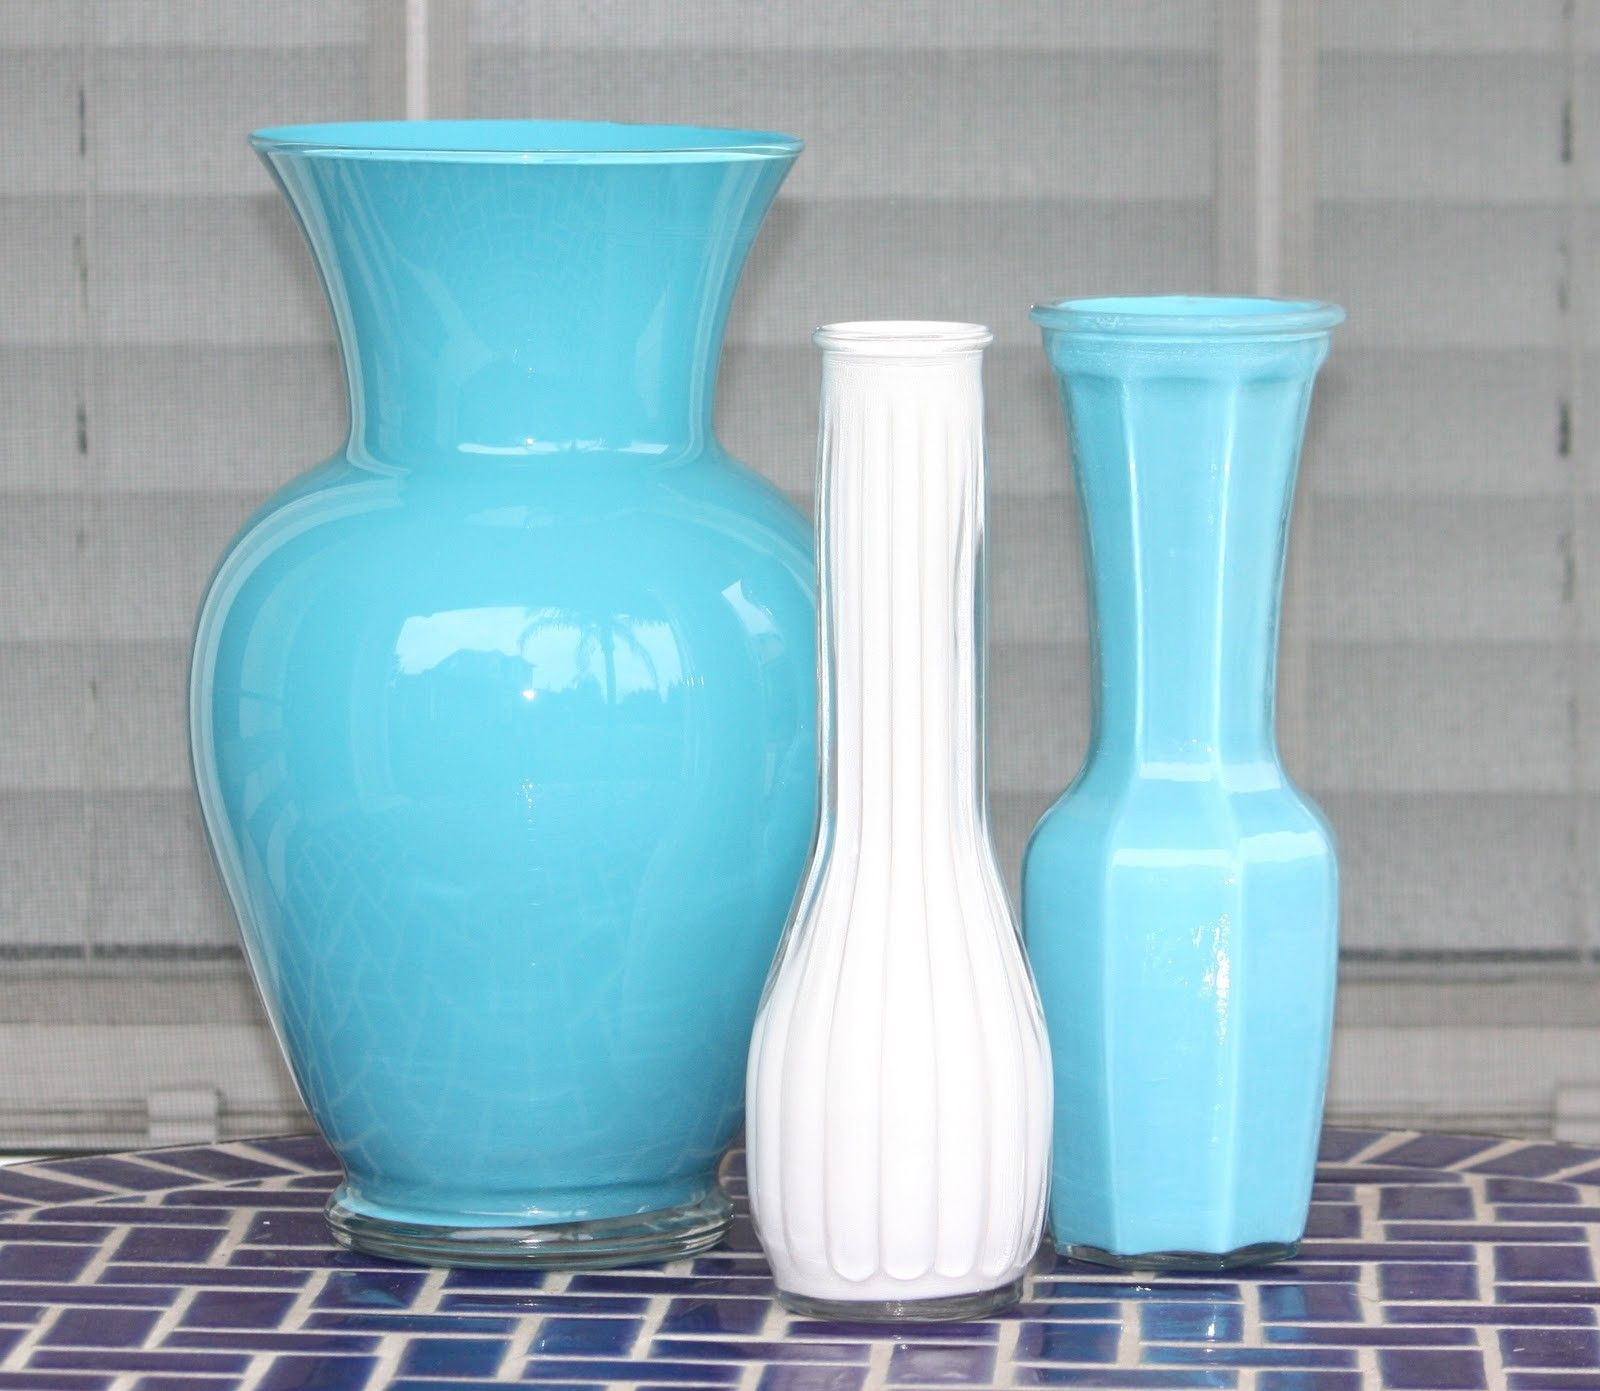 2 Gallon Vase Of Blue Glass Vase Awesome Diy Paint Glass Awesome Encuentra Gran Inside Blue Glass Vase Awesome Diy Paint Glass Awesome Encuentra Gran Variedad De Frascos